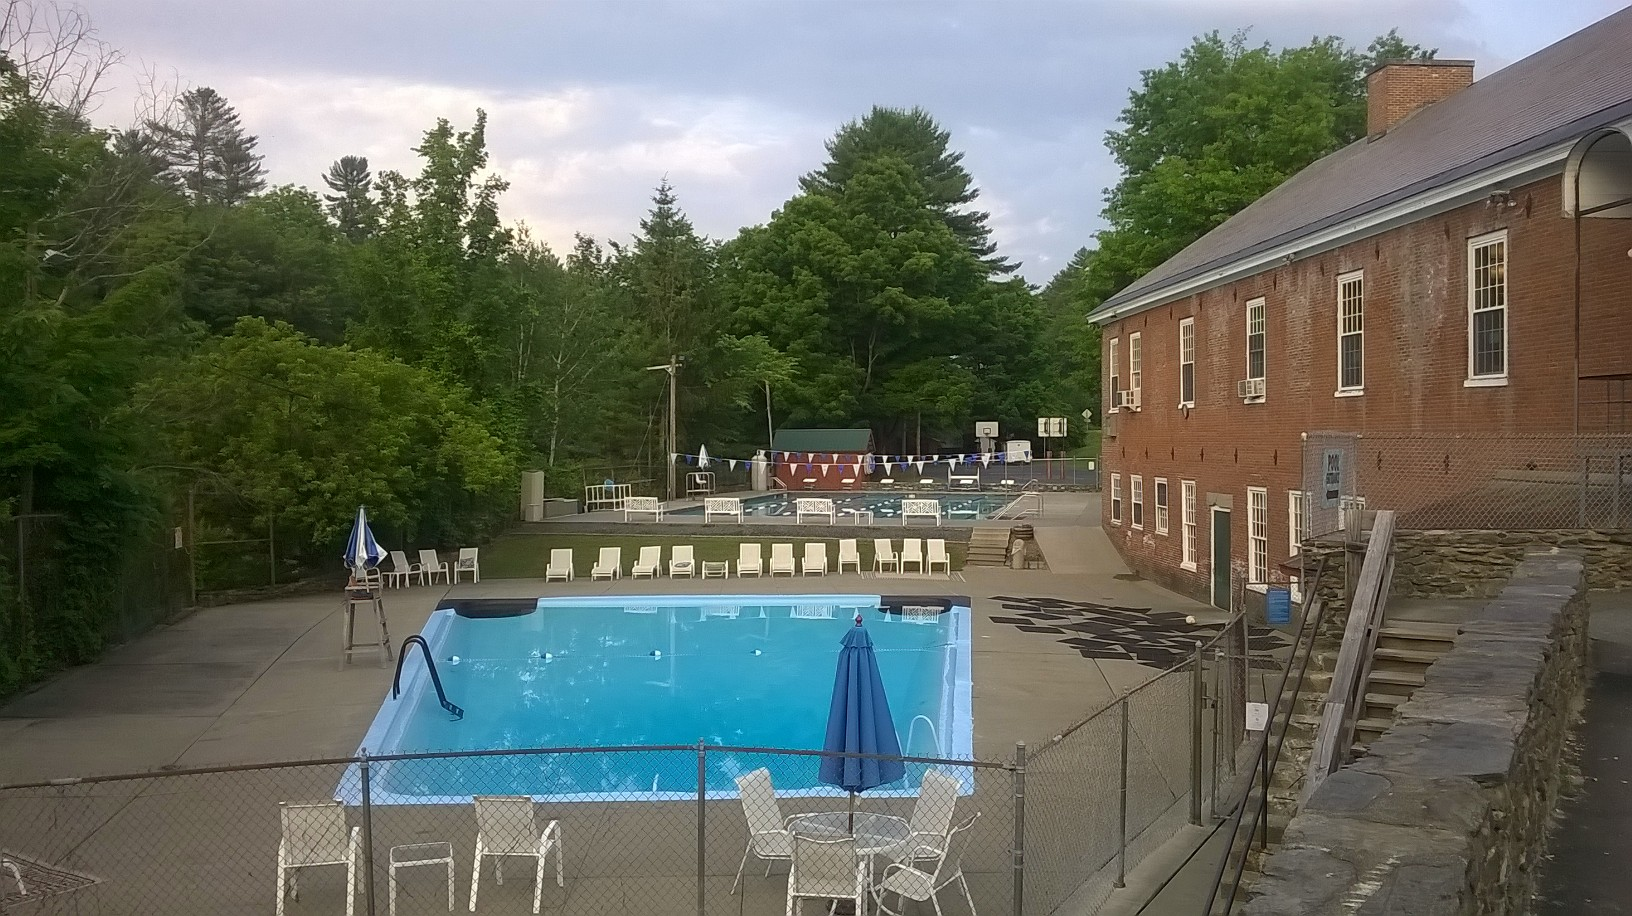 0246 - Woodstock Recreation Center Pools (Vermont)